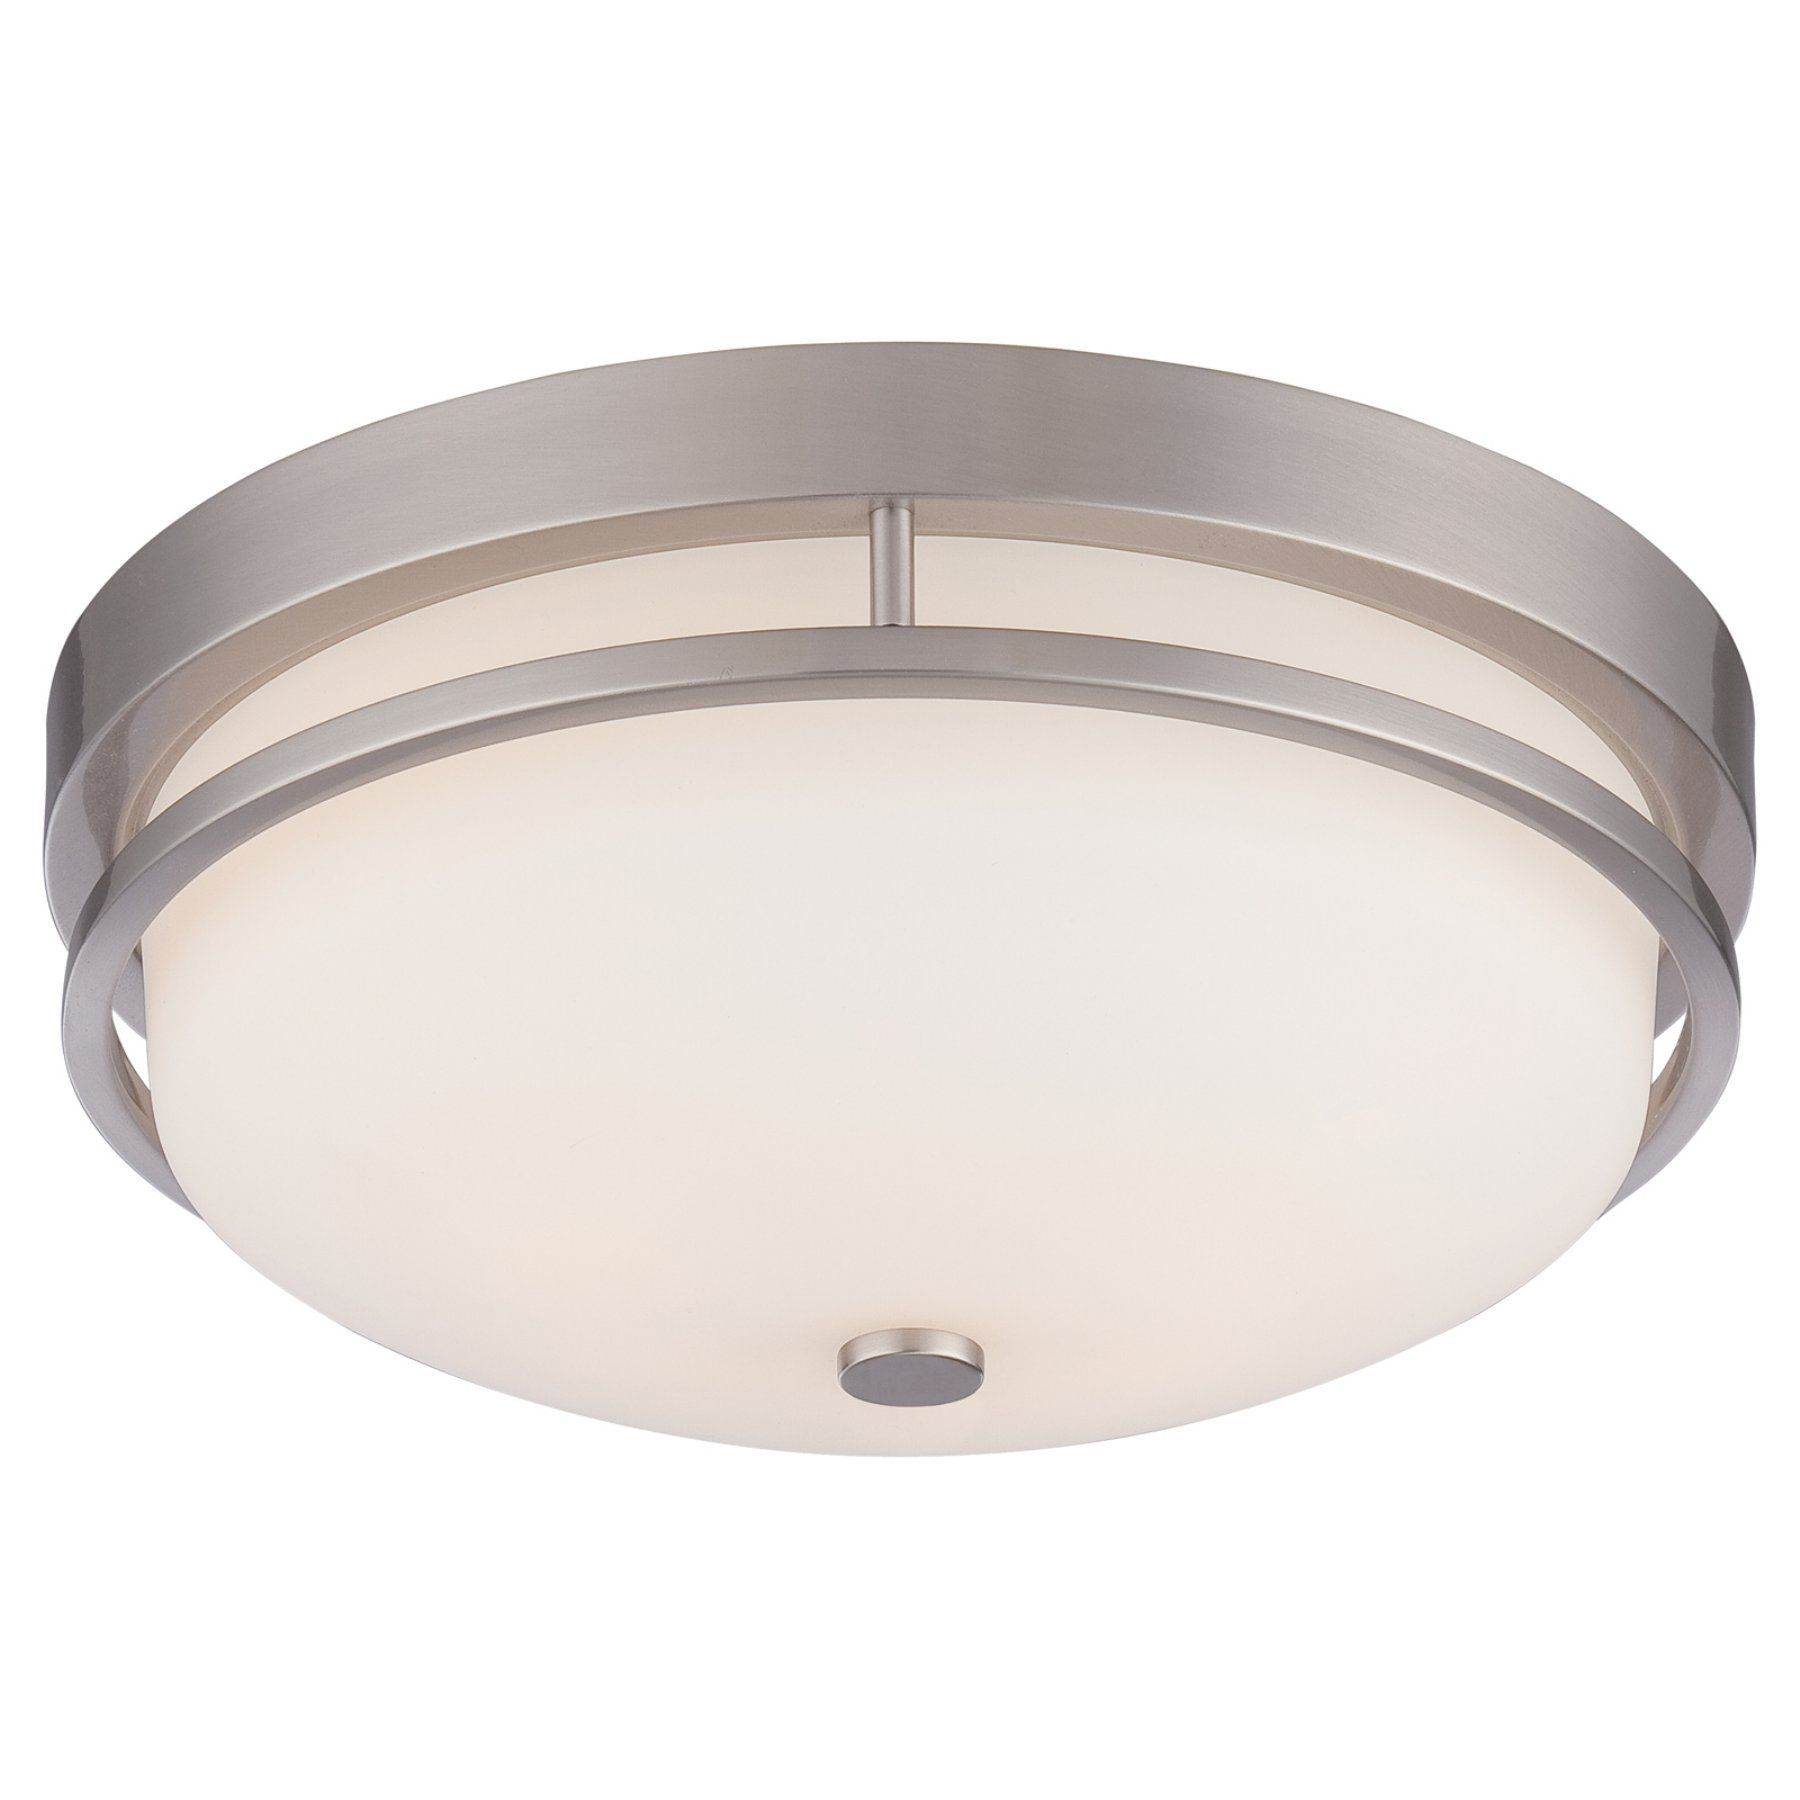 led brand with unitary modern ceiling products ceilings white mount acrylic max flush light nature finish chrome